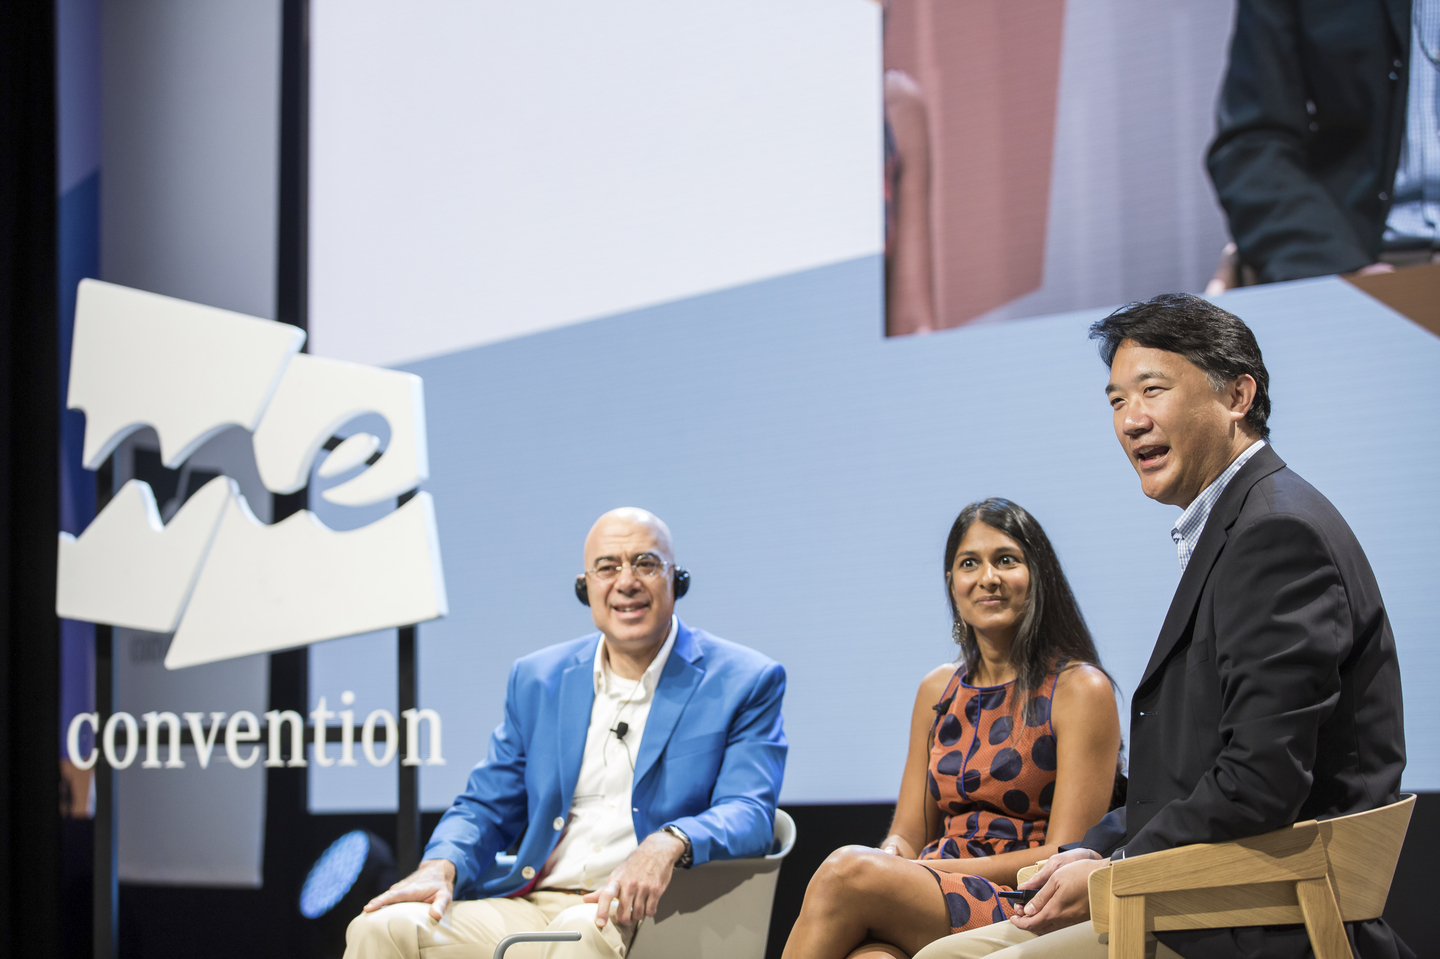 """(L-R) Glenn Zorpette, Neema Singh Guliani and Christopher S. Lee formed the """"The Price of Security: AI, Facial Recognition, and the Future of Policing"""" panel. Photo by Teymur Madjderey/Daimler AG"""